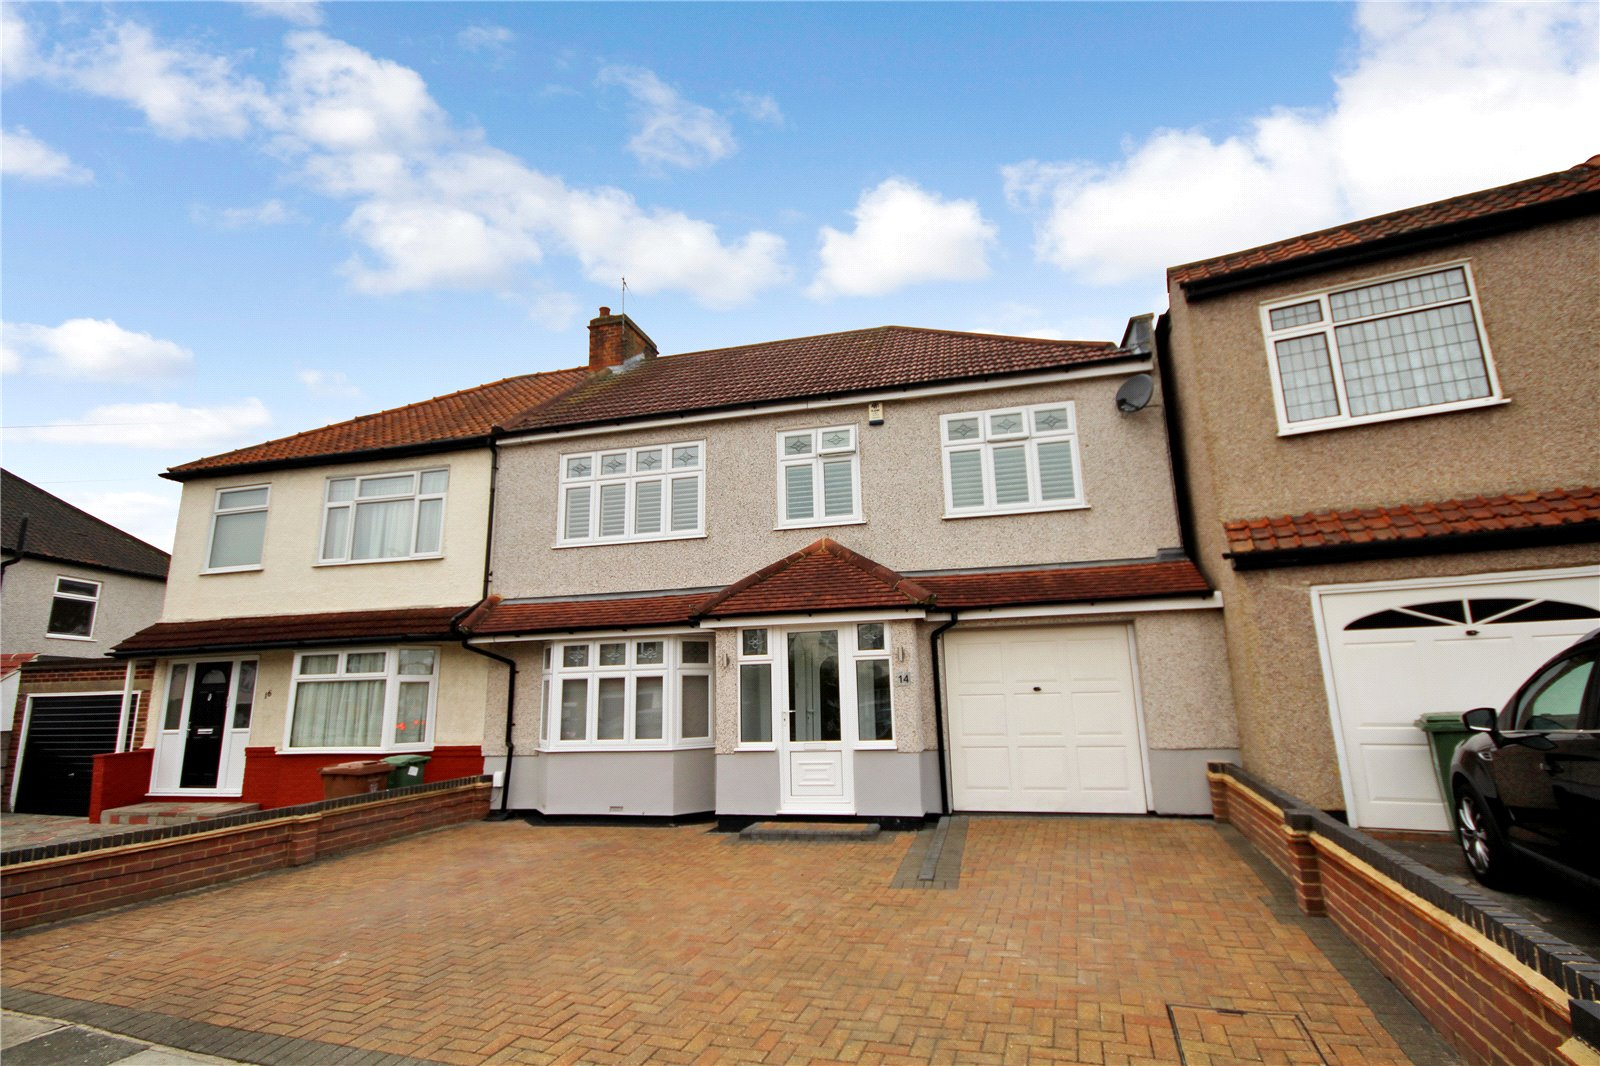 Selwyn Crescent, South Welling, Kent, DA16